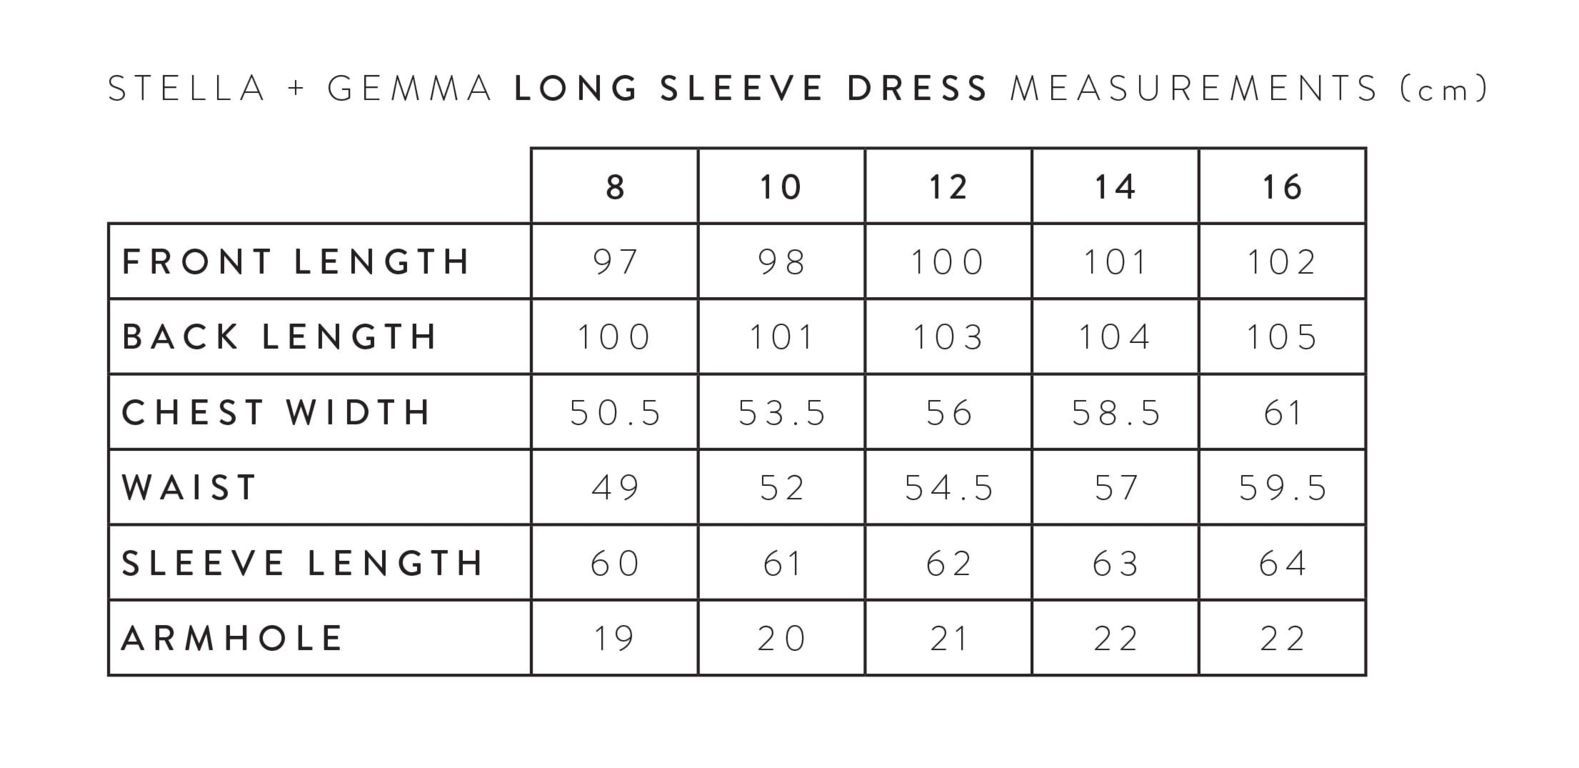 S+G LONG SLEEVE DRESS MEASUREMENTS